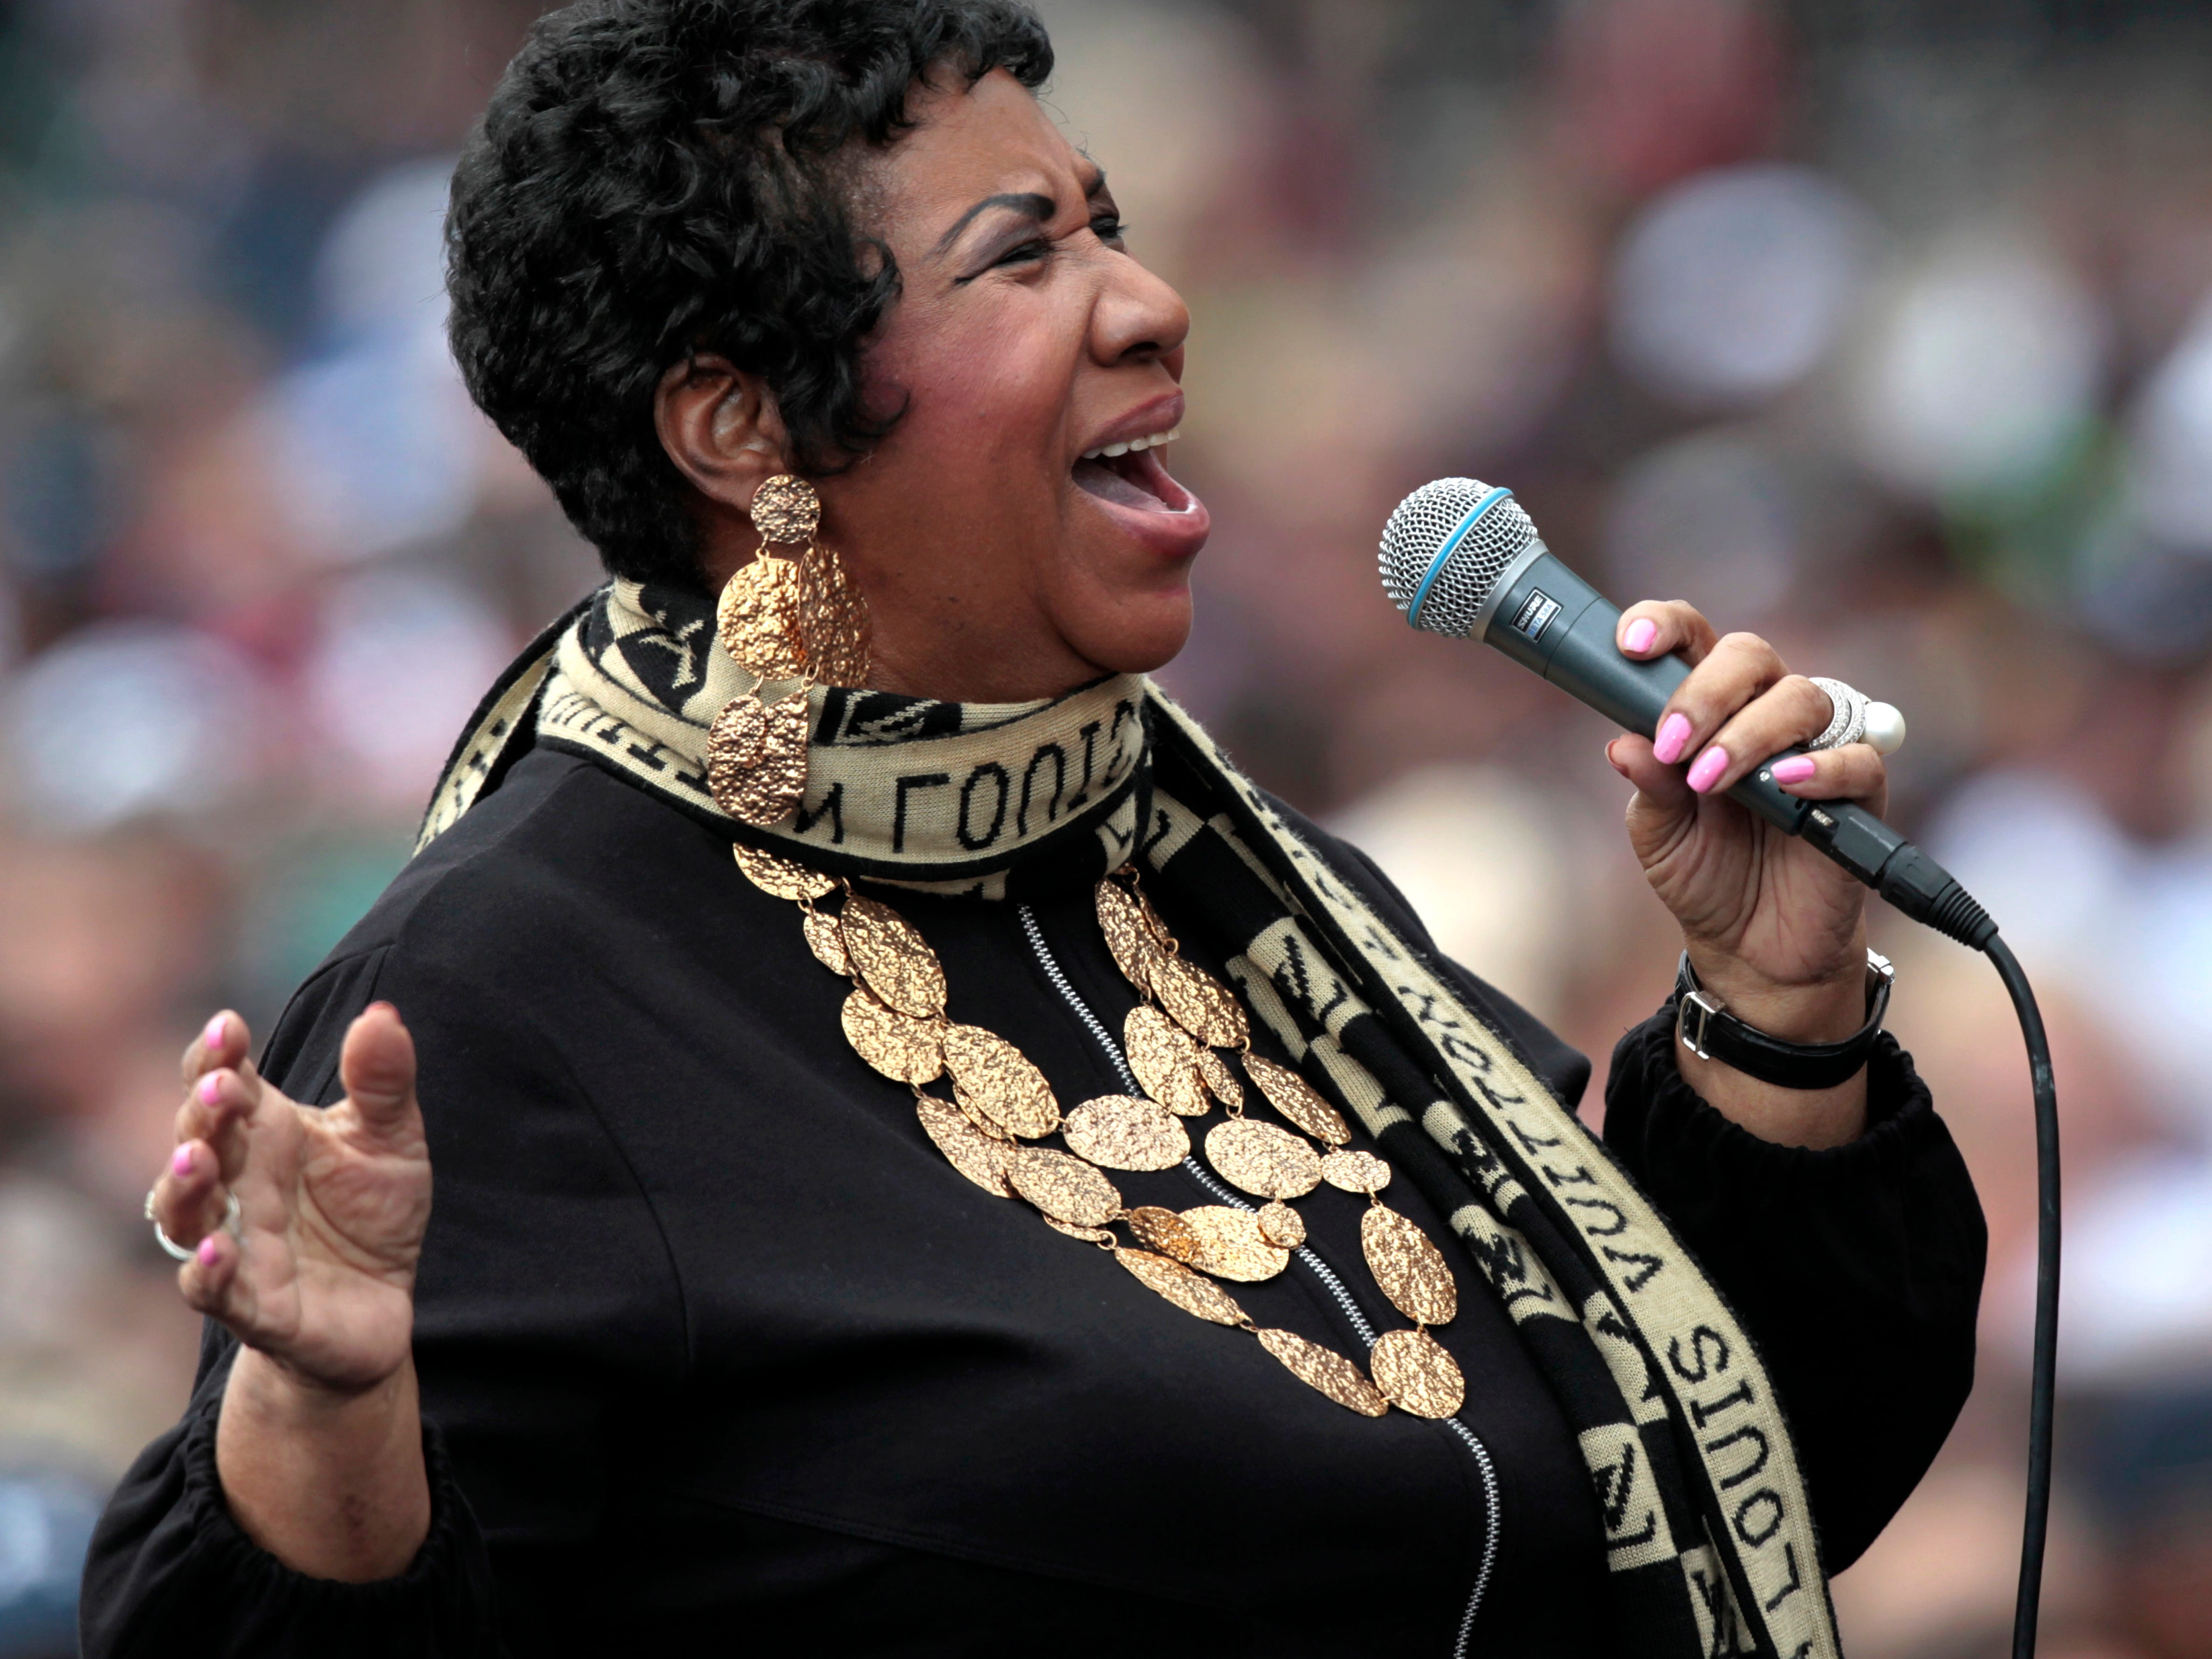 epa06947727 (FILE) - A file picture dated 05 September 2011 shows US singer Aretha Franklin performing at a Labor Day event outside of the Renaissance center in Detroit, Michiganm USA (reissued 13 August 2018). Media reports on 13 August 2018 state Roger Friedman, a journalist and family friend, made a statement on his website Showbiz 411 on 13 August saying Aretha Franklin is seriously ill and surrounded by her relatives. Franklin was diagnosed with cancer in 2010.  EPA-EFE/JEFF KOWALSKY *** Local Caption *** 53313442 ORG XMIT: JAK34